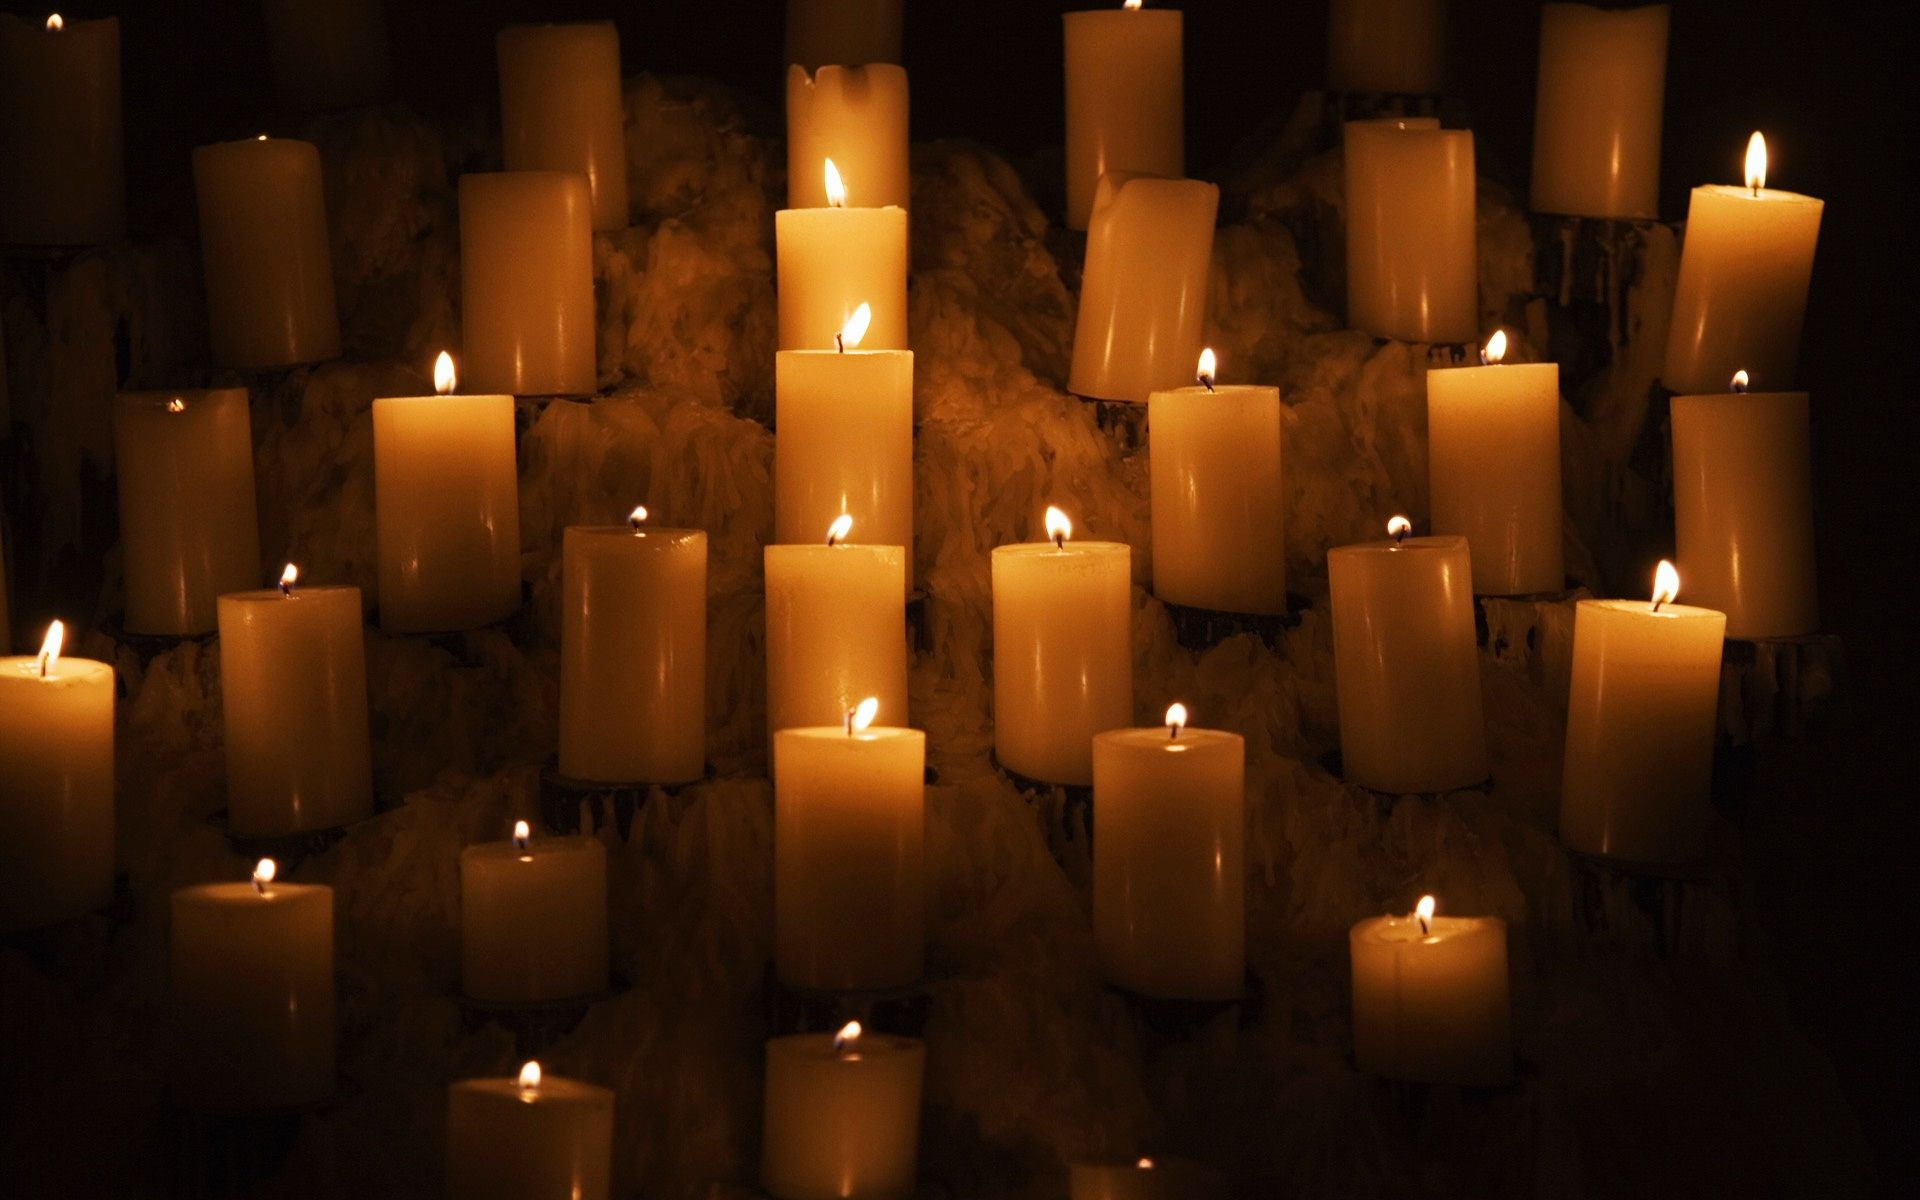 1000+ images about ✨Candles in the Dark✨ on Pinterest | Tibet ...